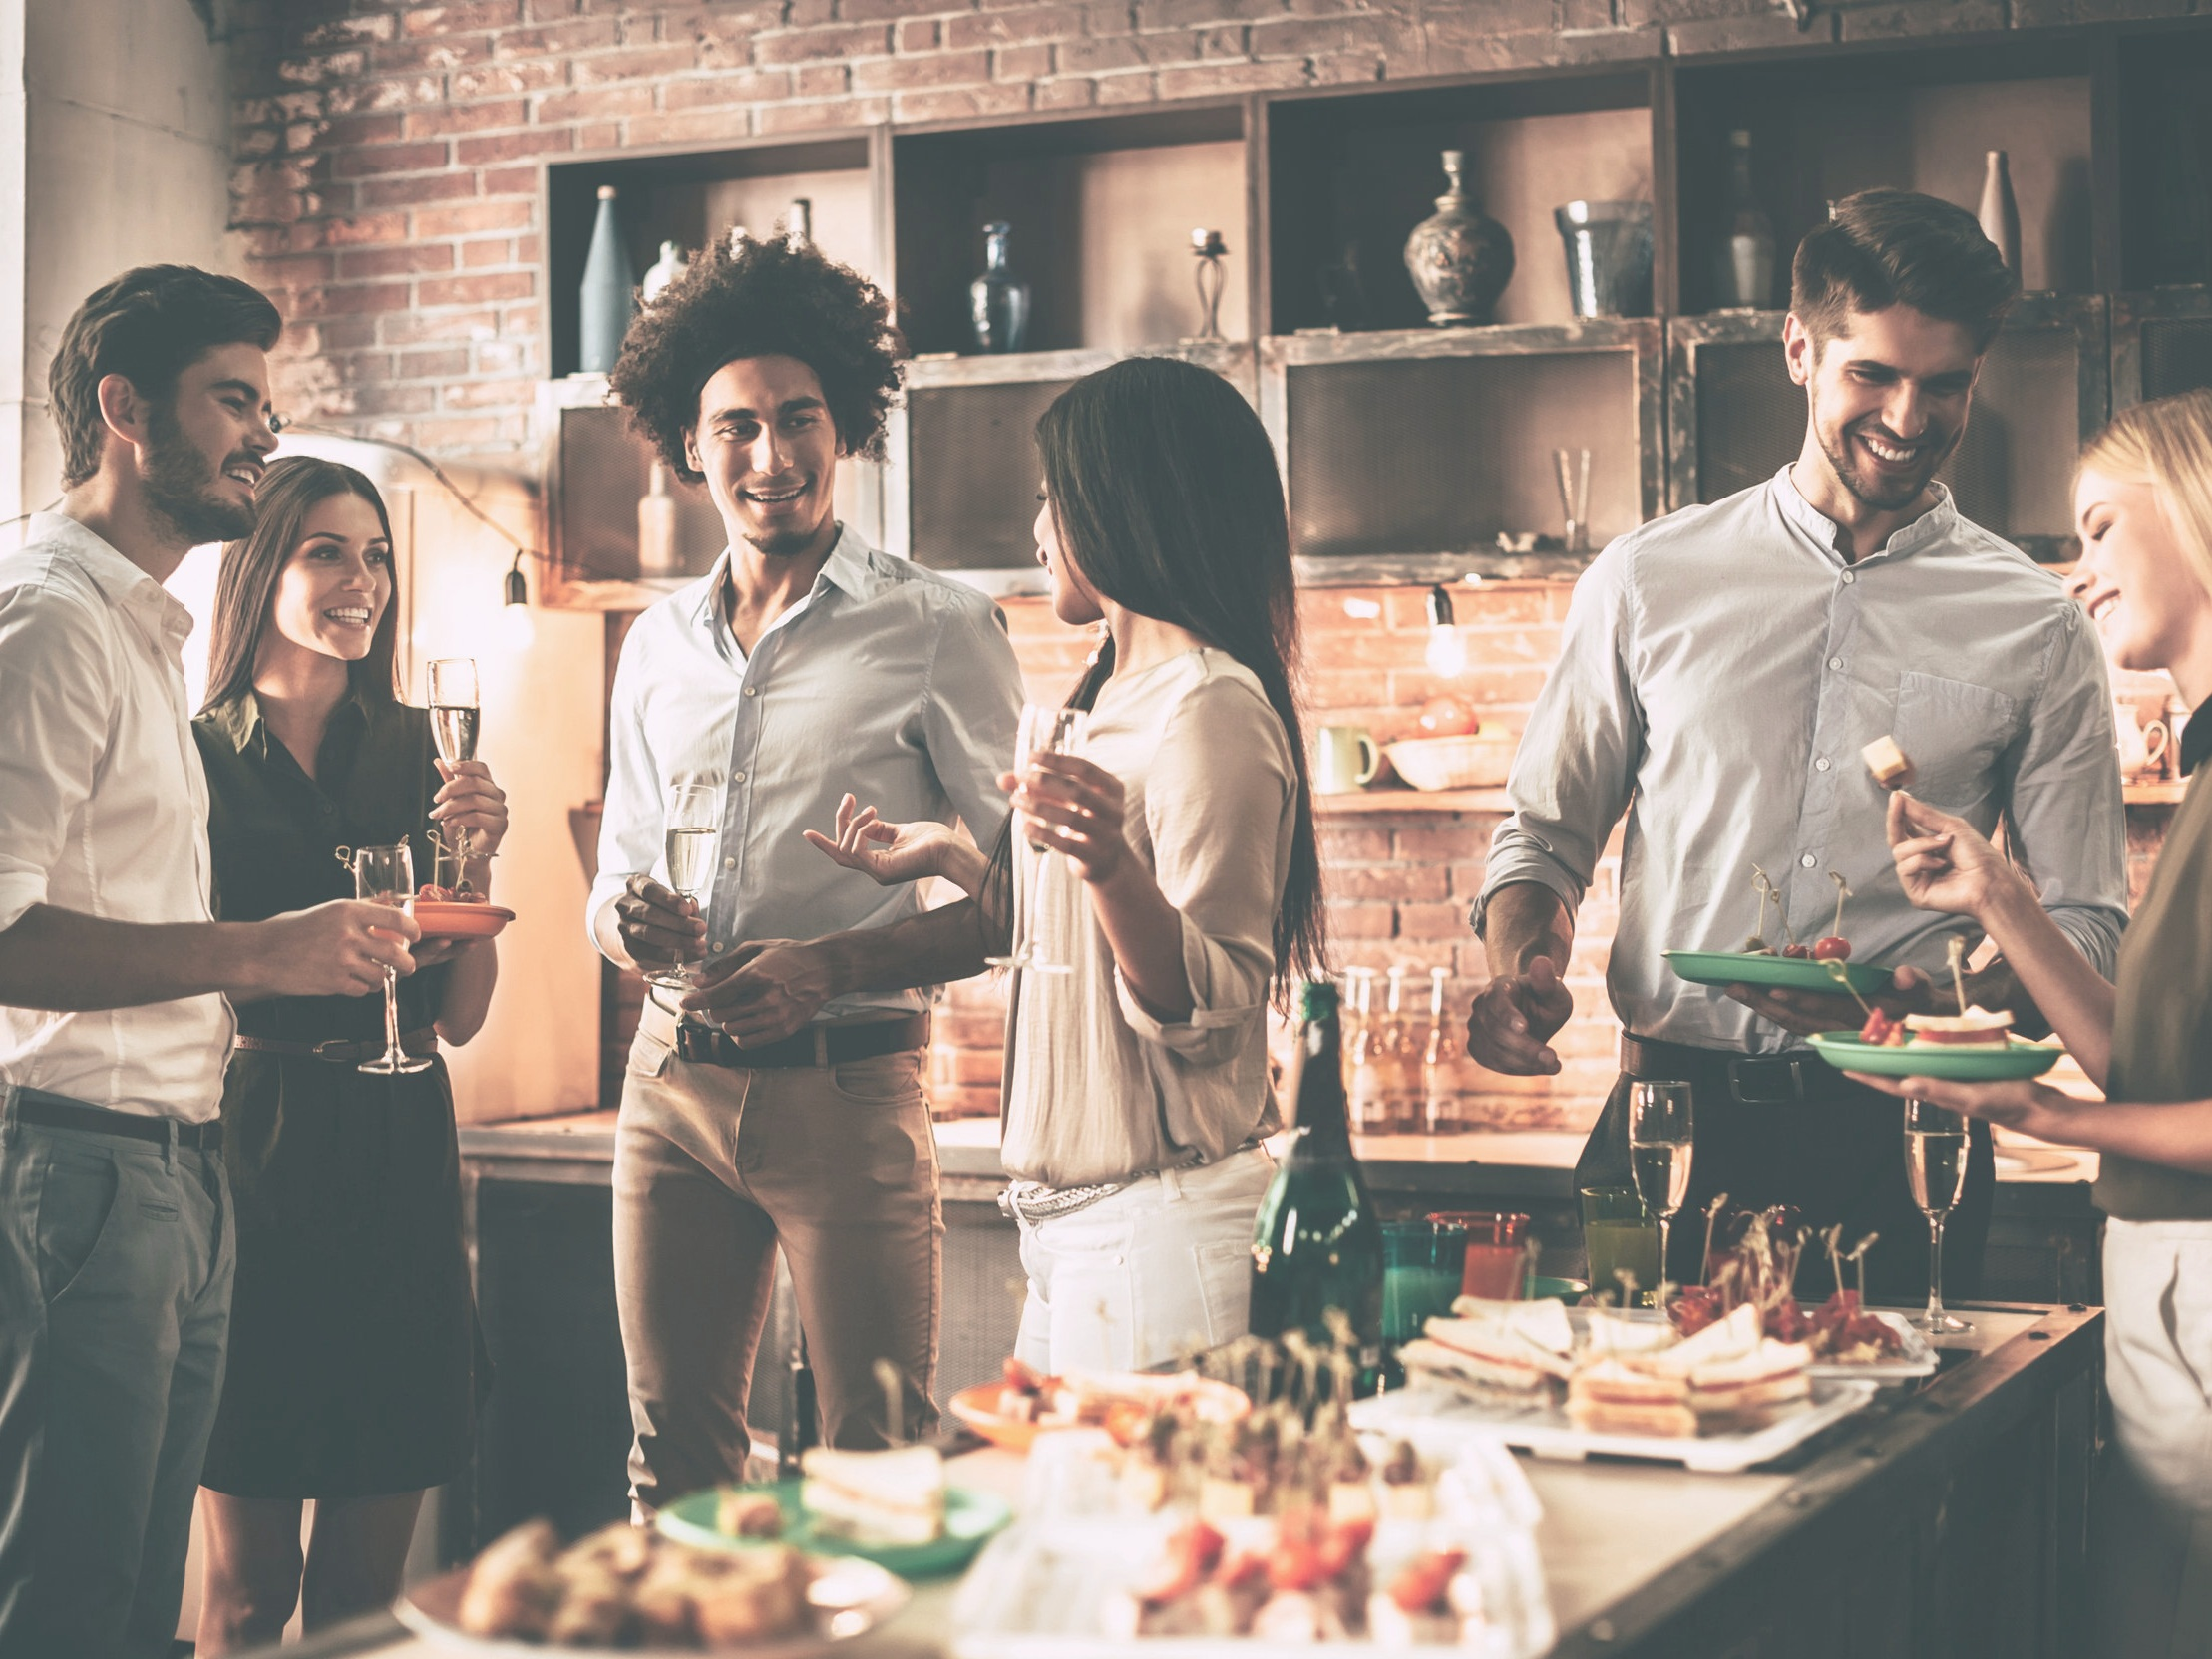 Social Etiquette Guide - Quick tips to remember